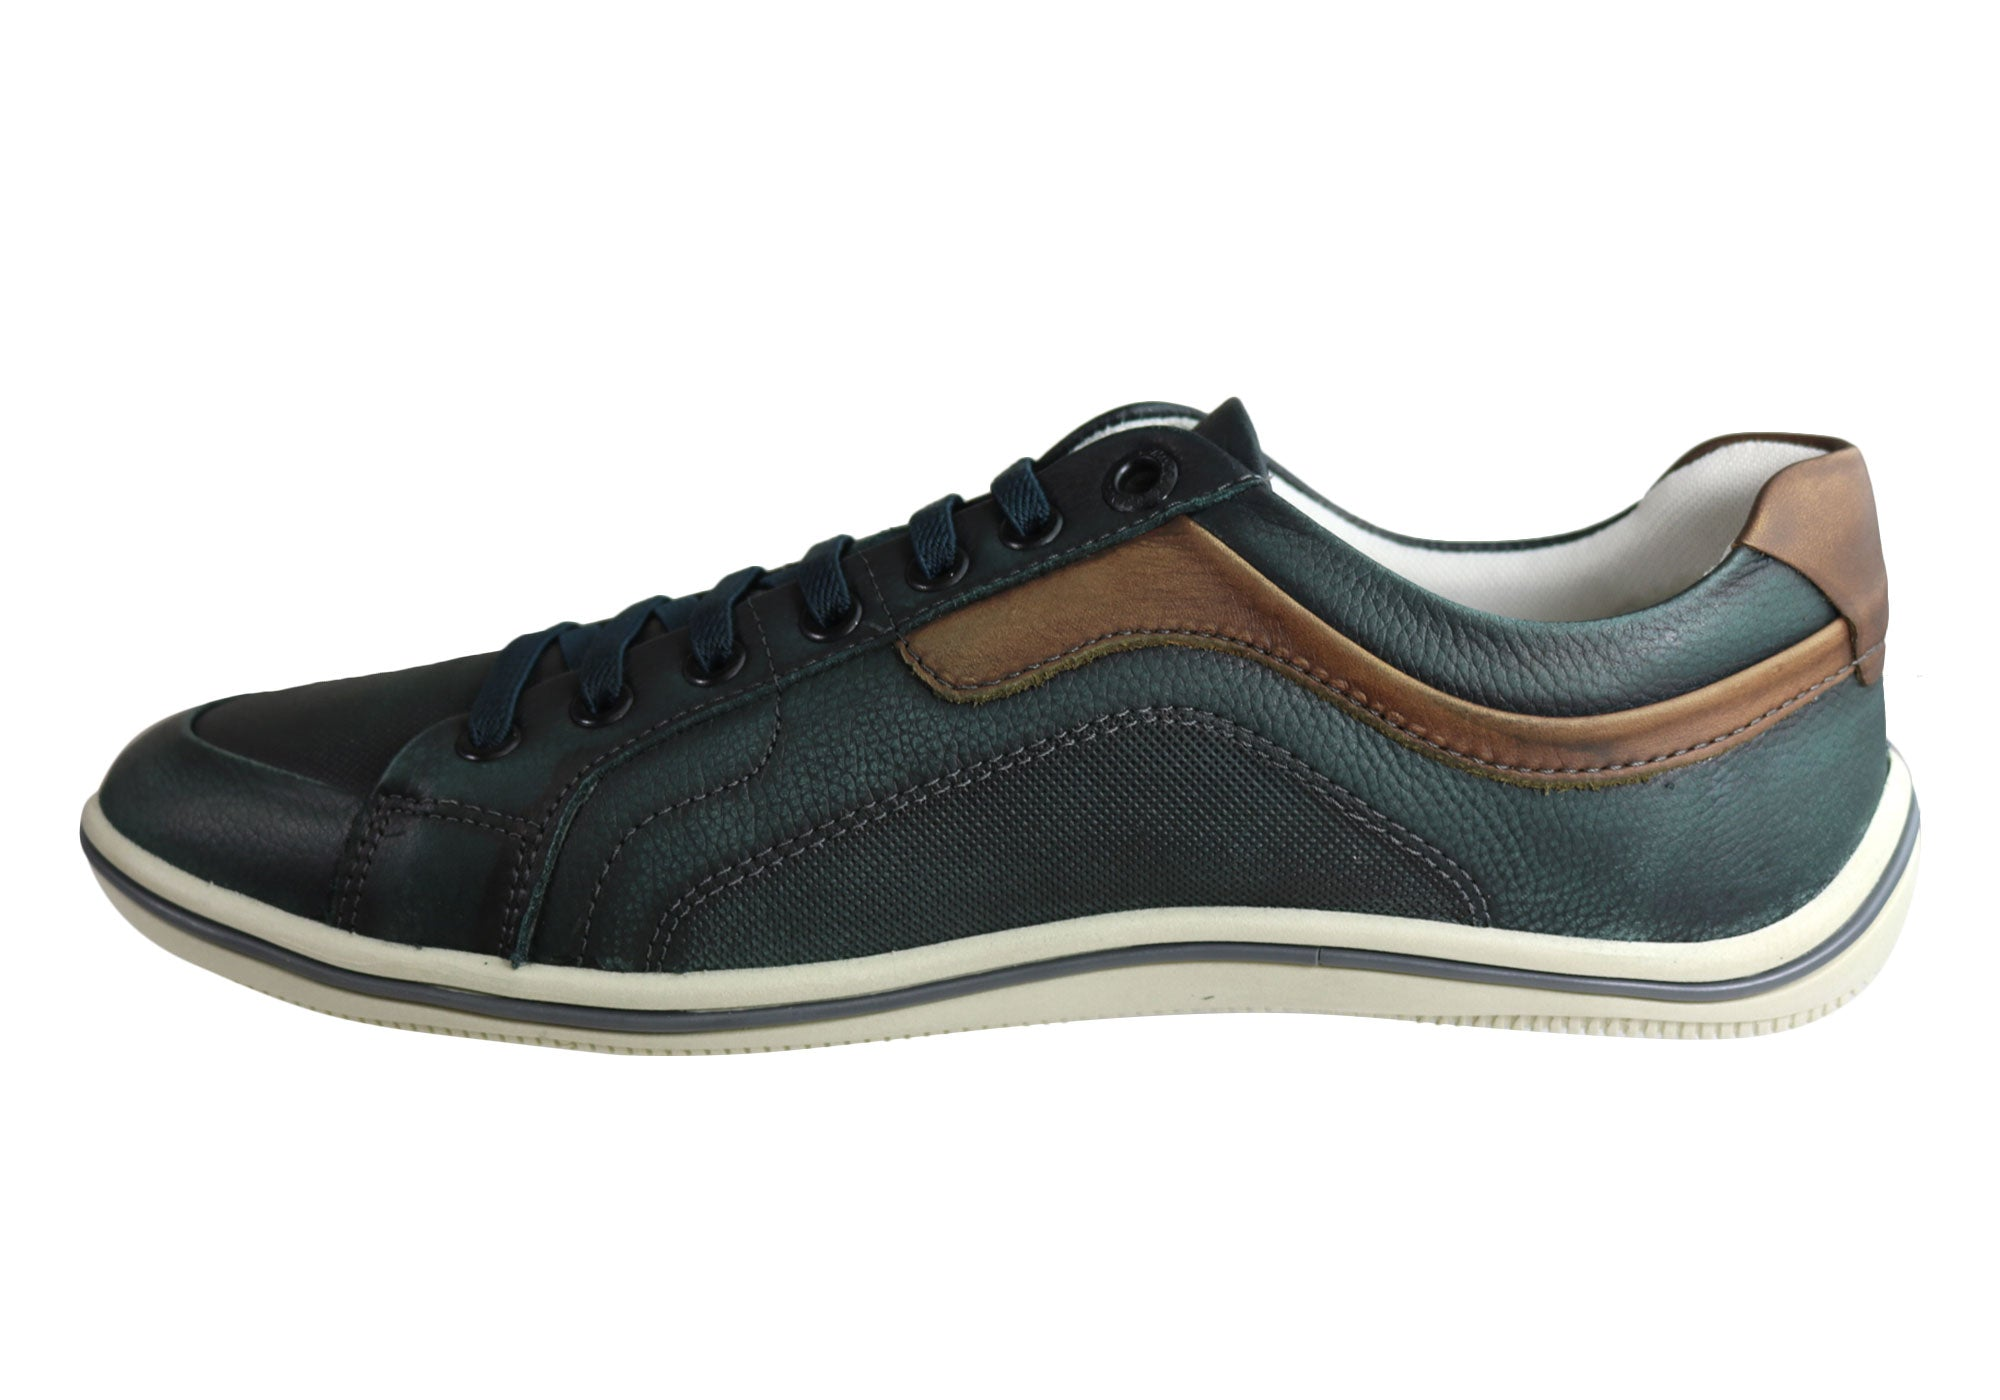 NEW-DEMOCRATA-MILES-MENS-LEATHER-SLIP-ON-CASUAL-SHOES-MADE-IN-BRAZIL thumbnail 10